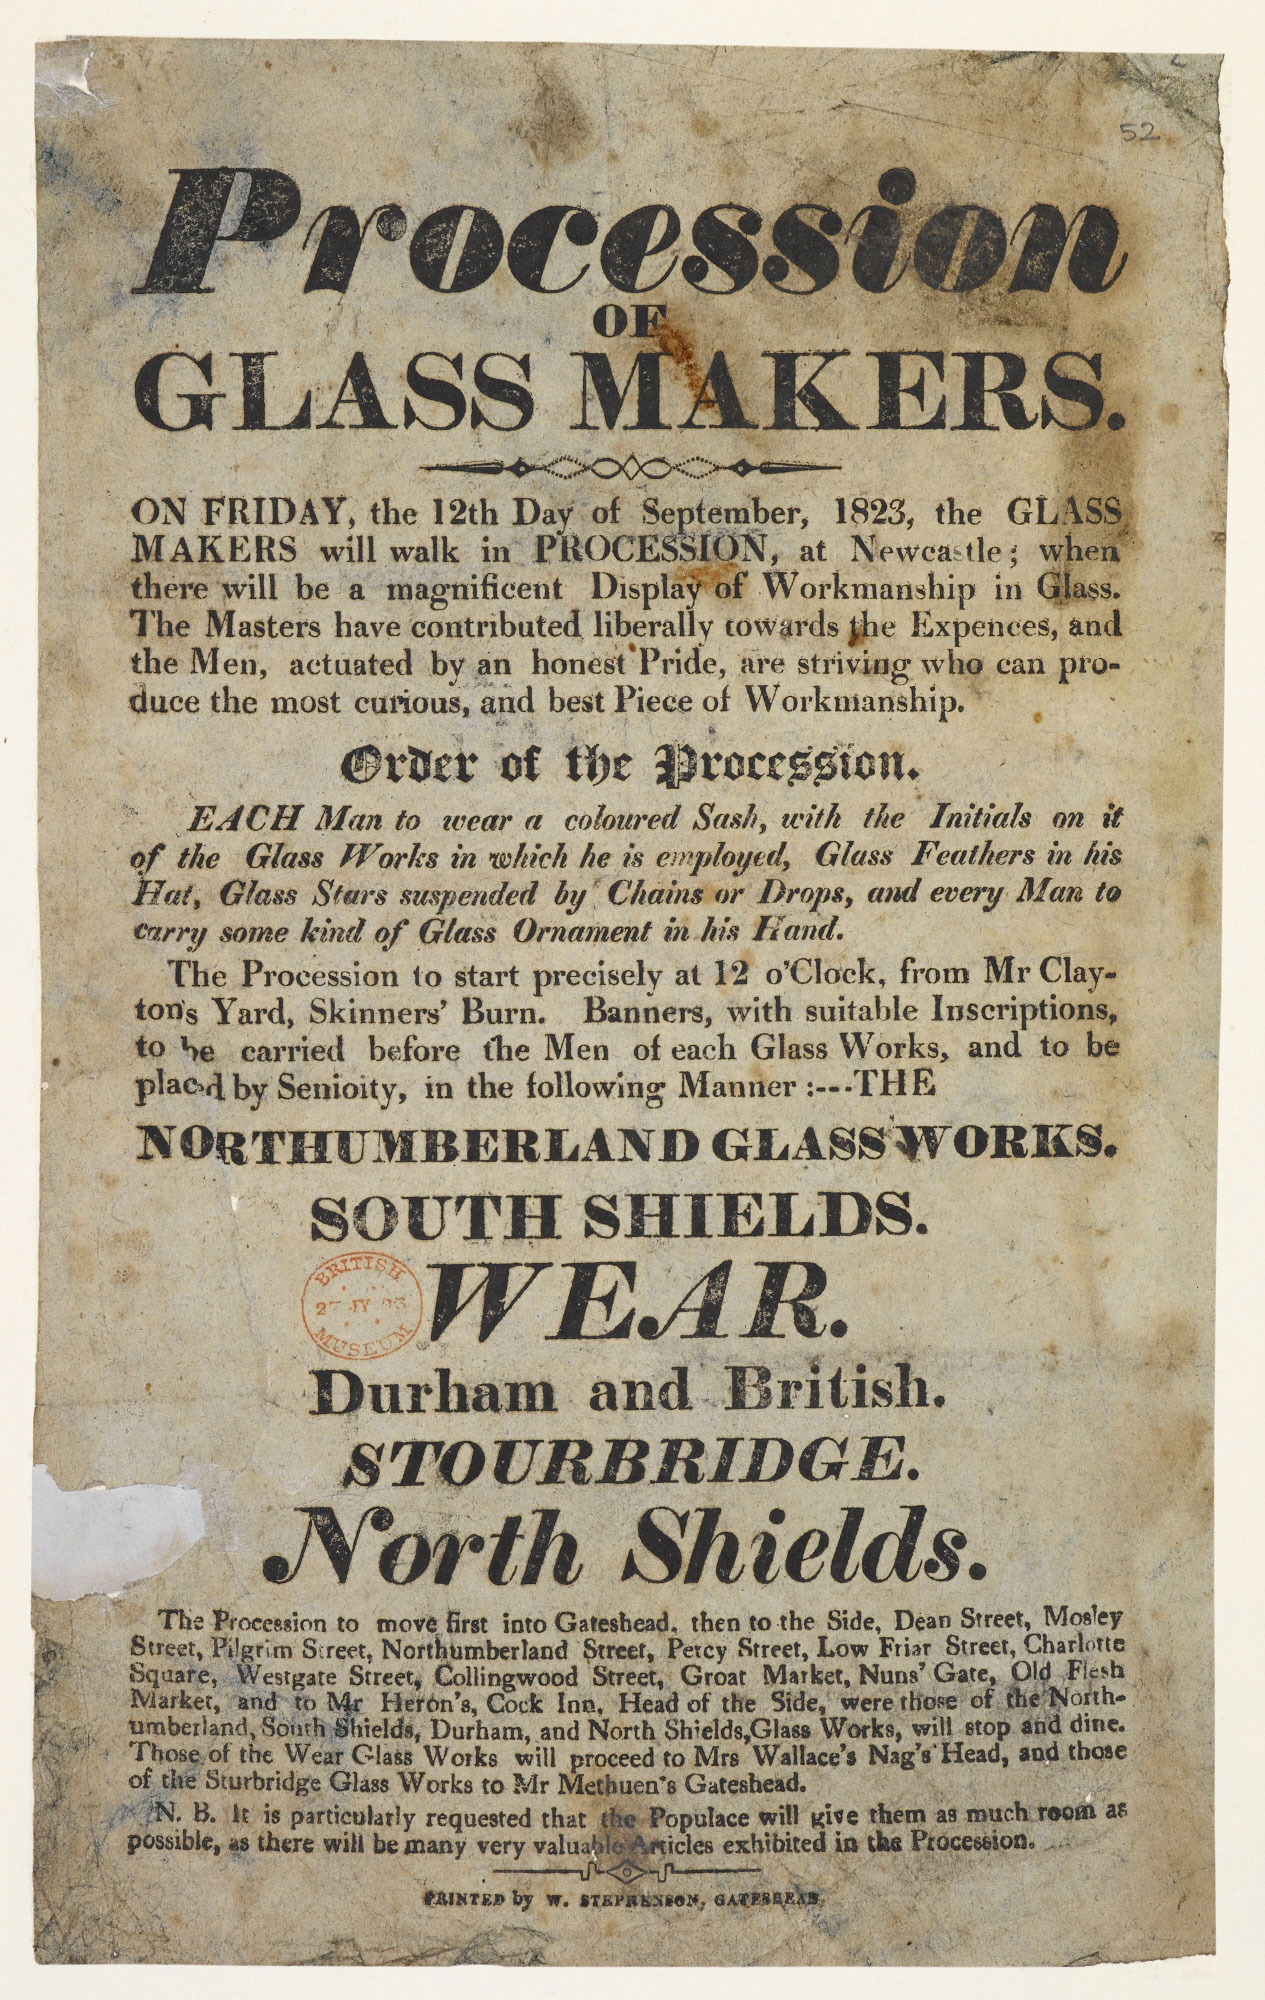 Procession of glass makers in Newcastle